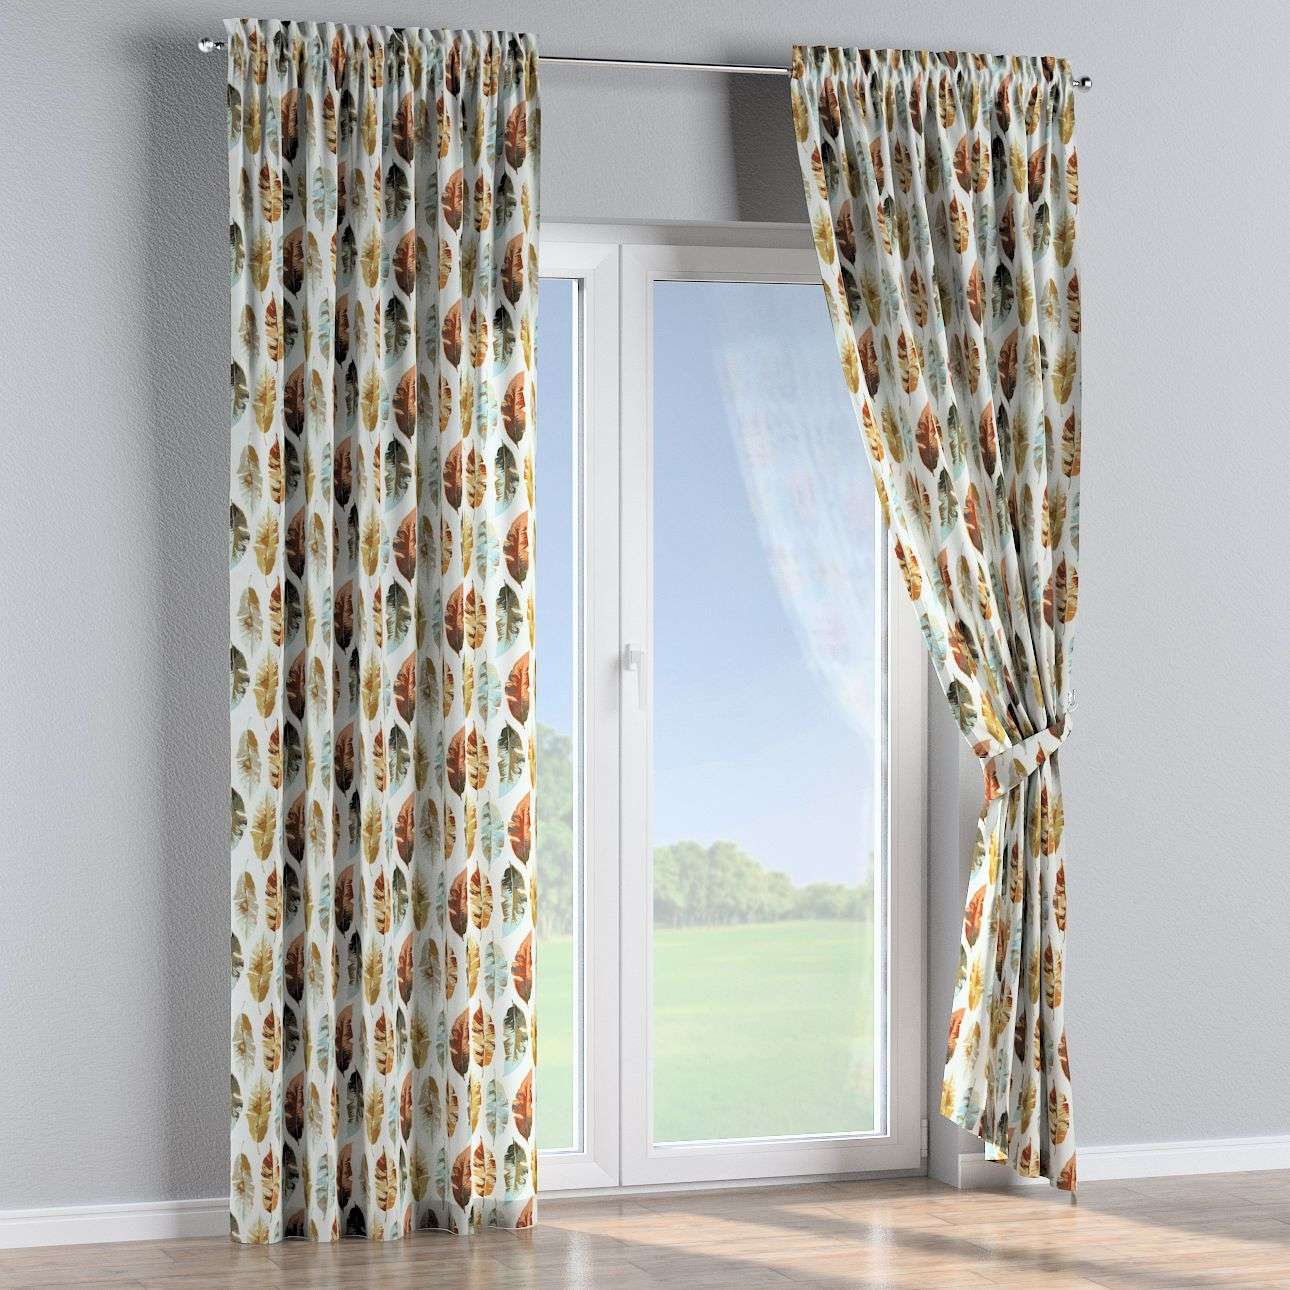 Slot and frill curtains 130 × 260 cm (51 × 102 inch) in collection Urban Jungle, fabric: 141-43